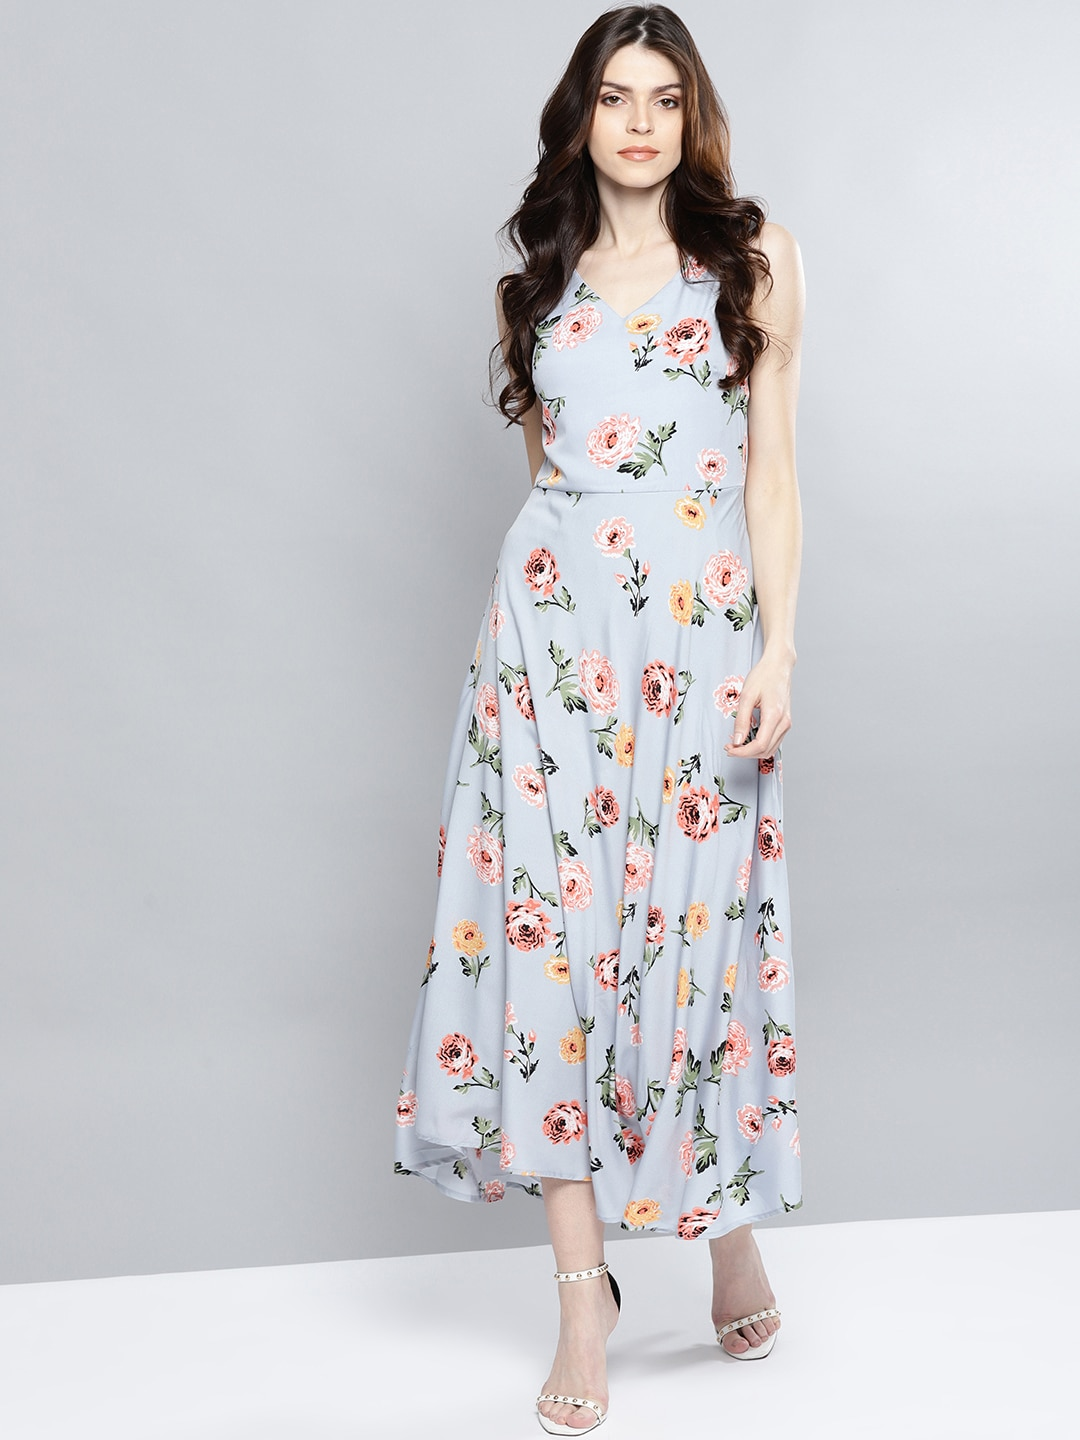 87213df7e99 Floral Gown - Buy Floral Gown online in India